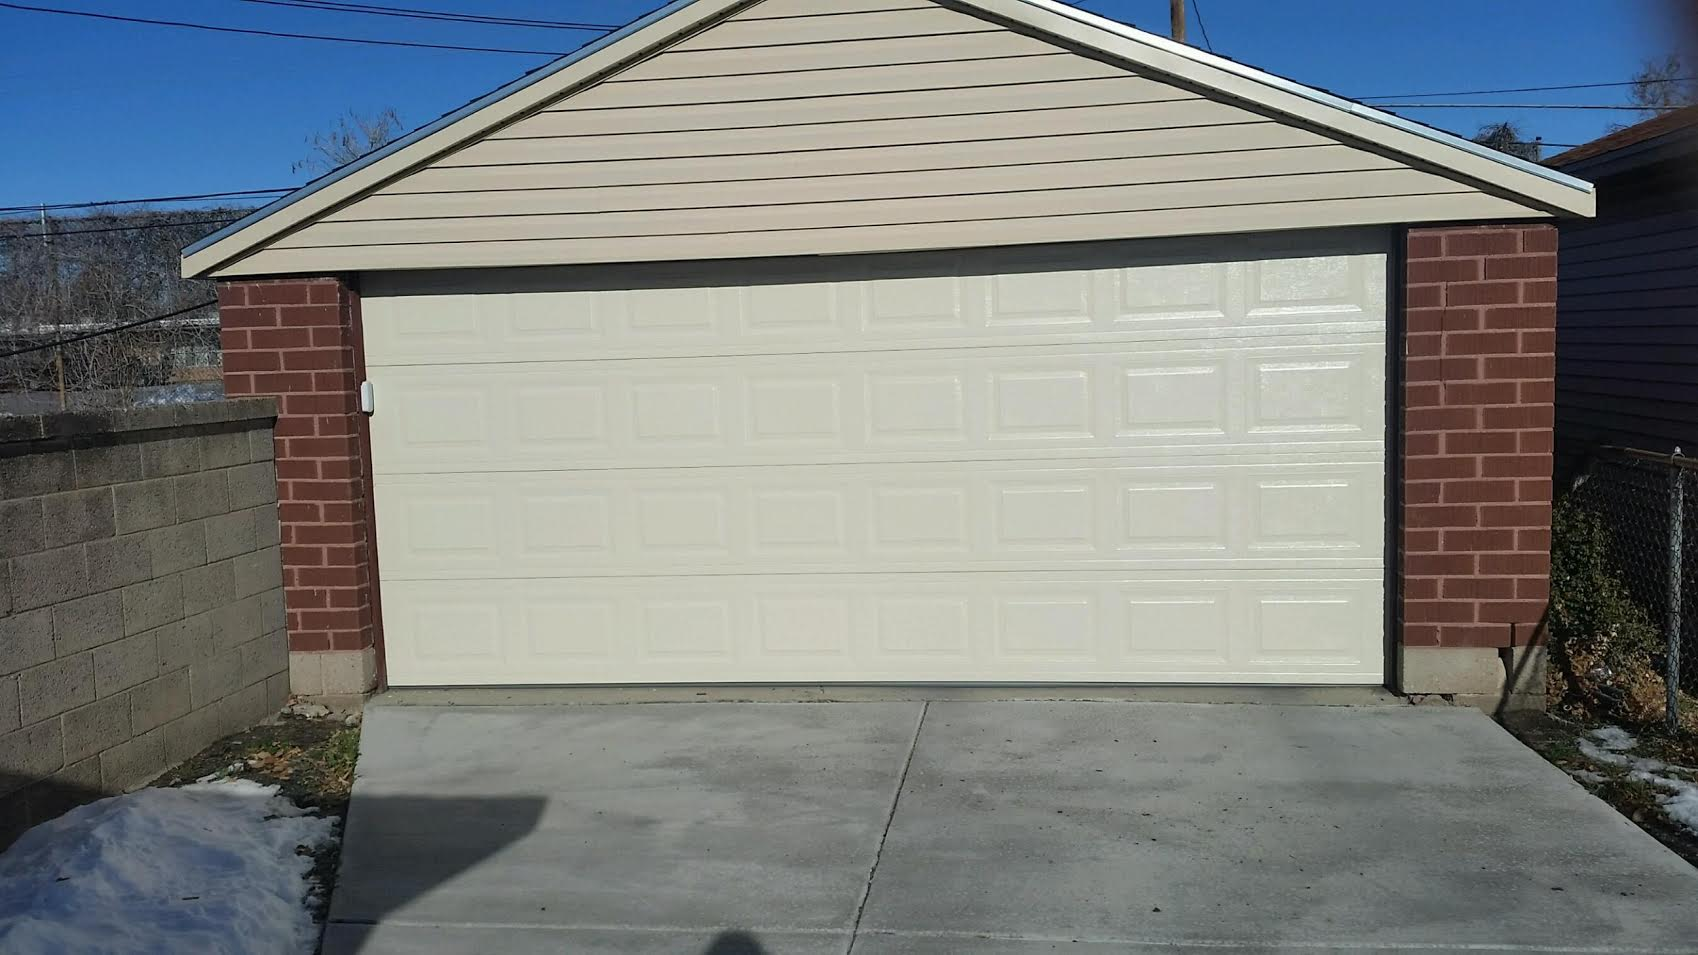 955 #2F629C Custom Garage & Door Gallery A Plus Garage Doors image Salt Lake City Garage Doors 36831698